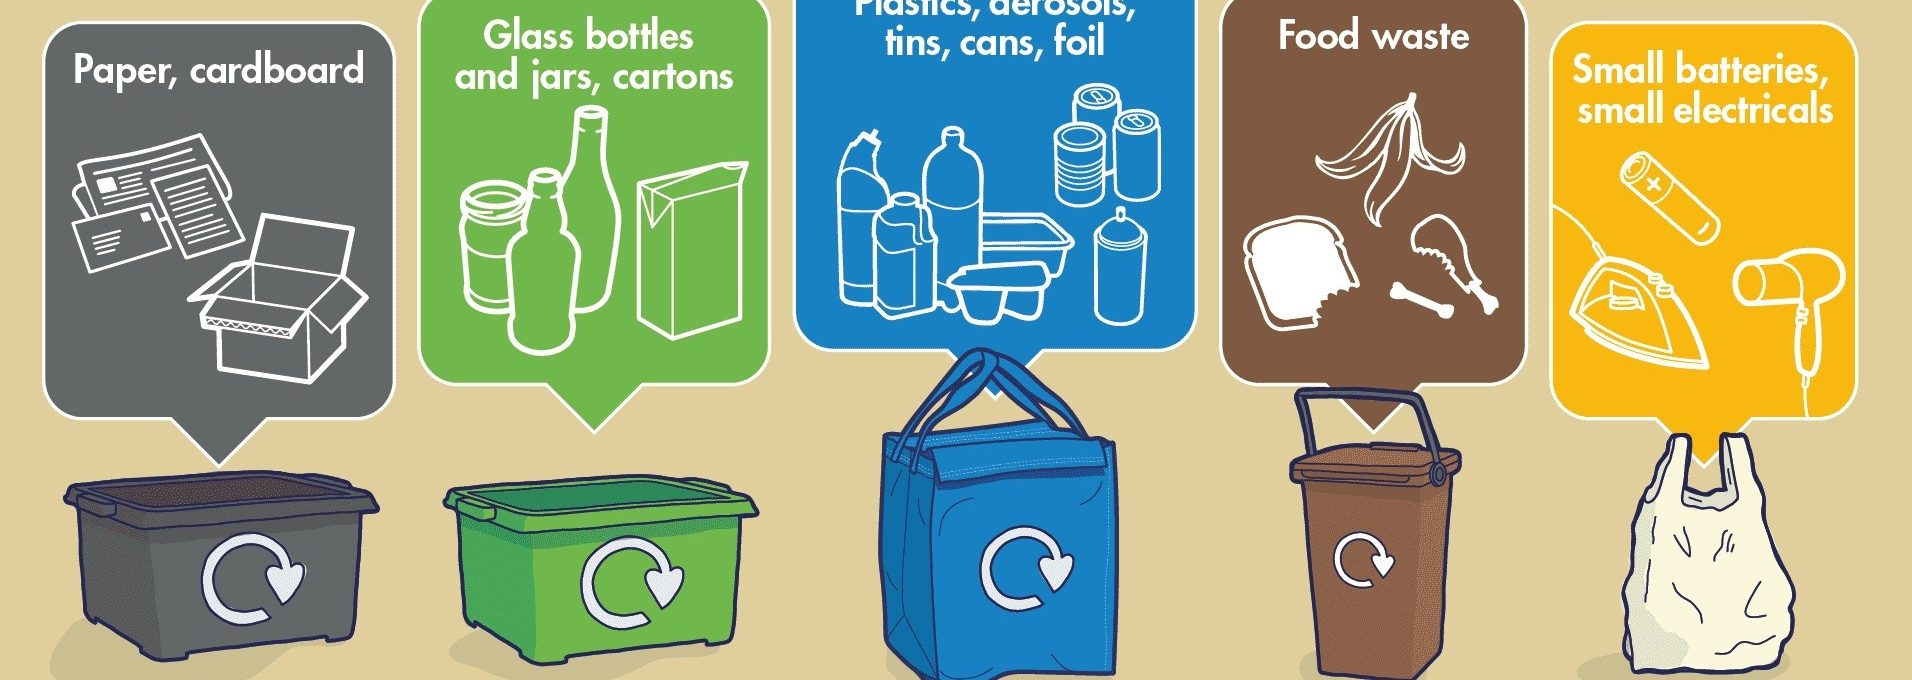 Graphic of different recycling bins